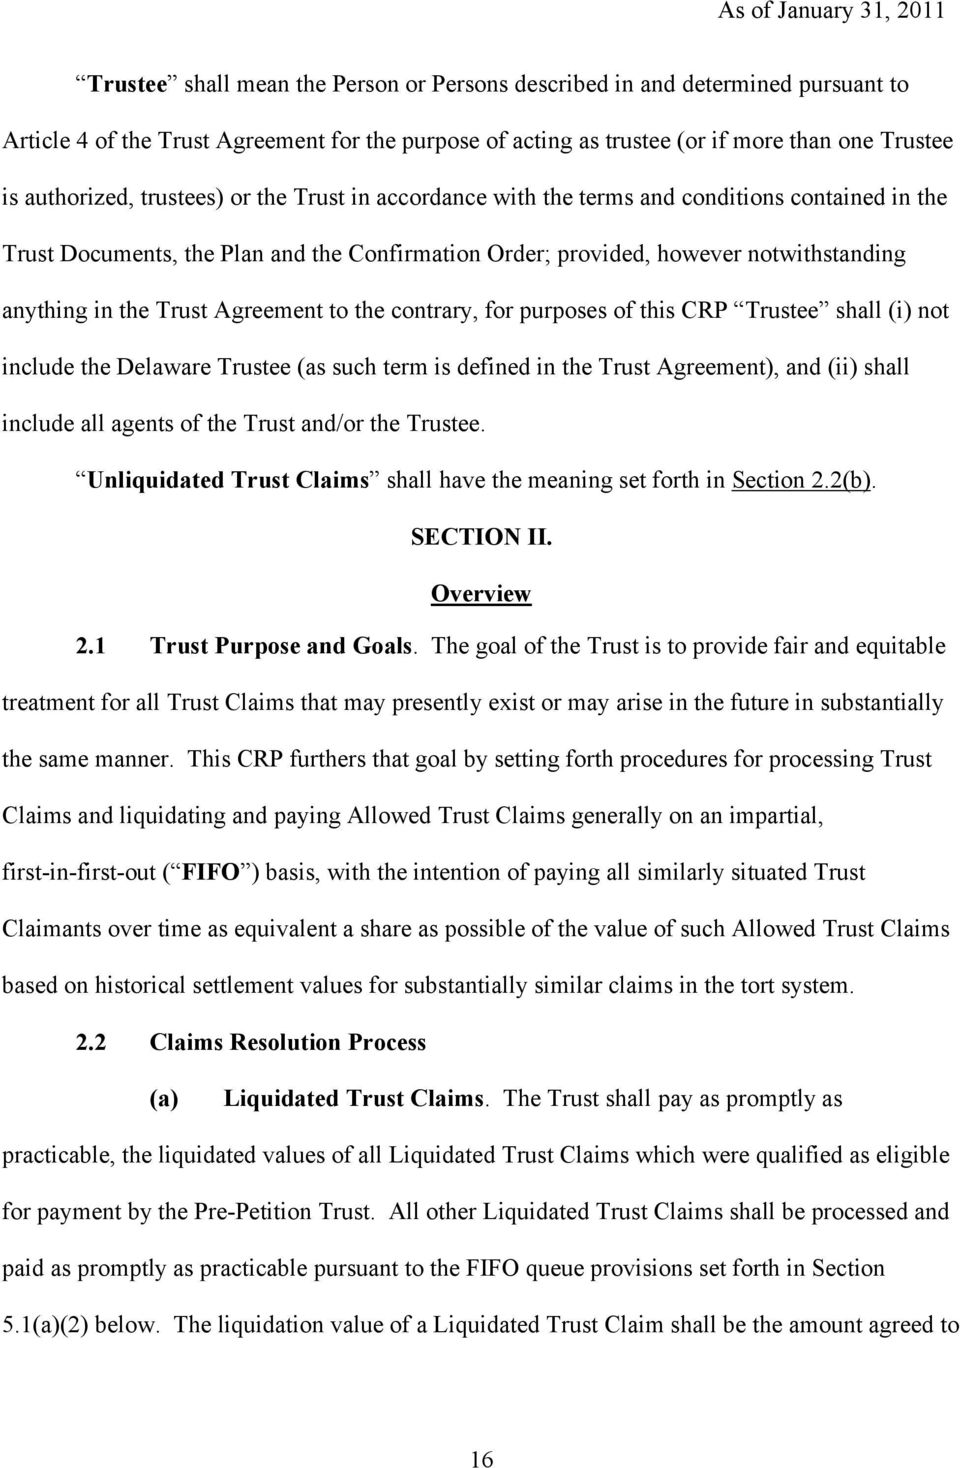 Agreement to the contrary, for purposes of this CRP Trustee shall (i) not include the Delaware Trustee (as such term is defined in the Trust Agreement), and (ii) shall include all agents of the Trust